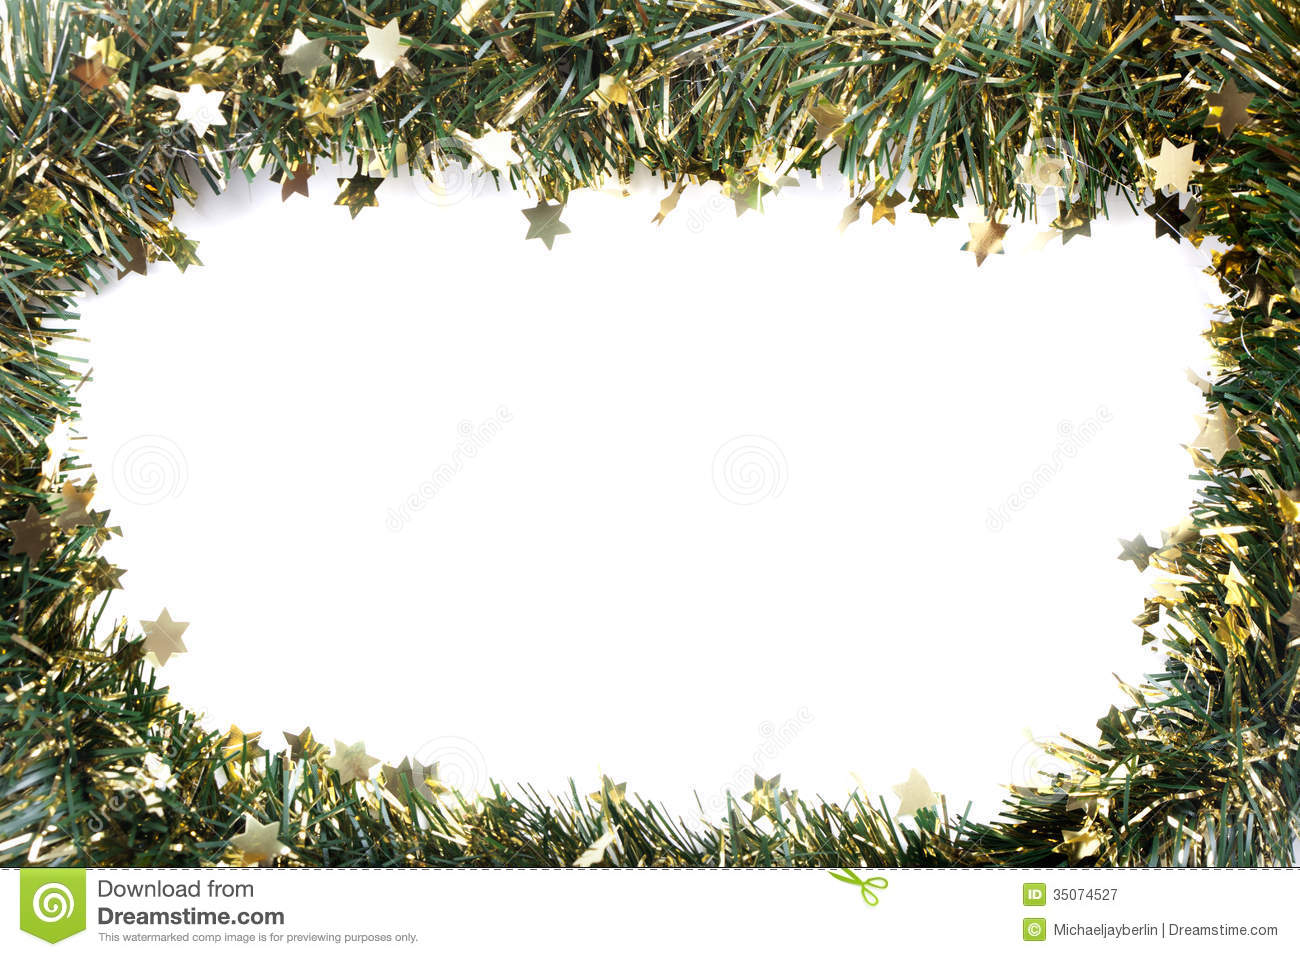 Artificial Fir Branch Garland With Tinsel Stock Image - Image of ...